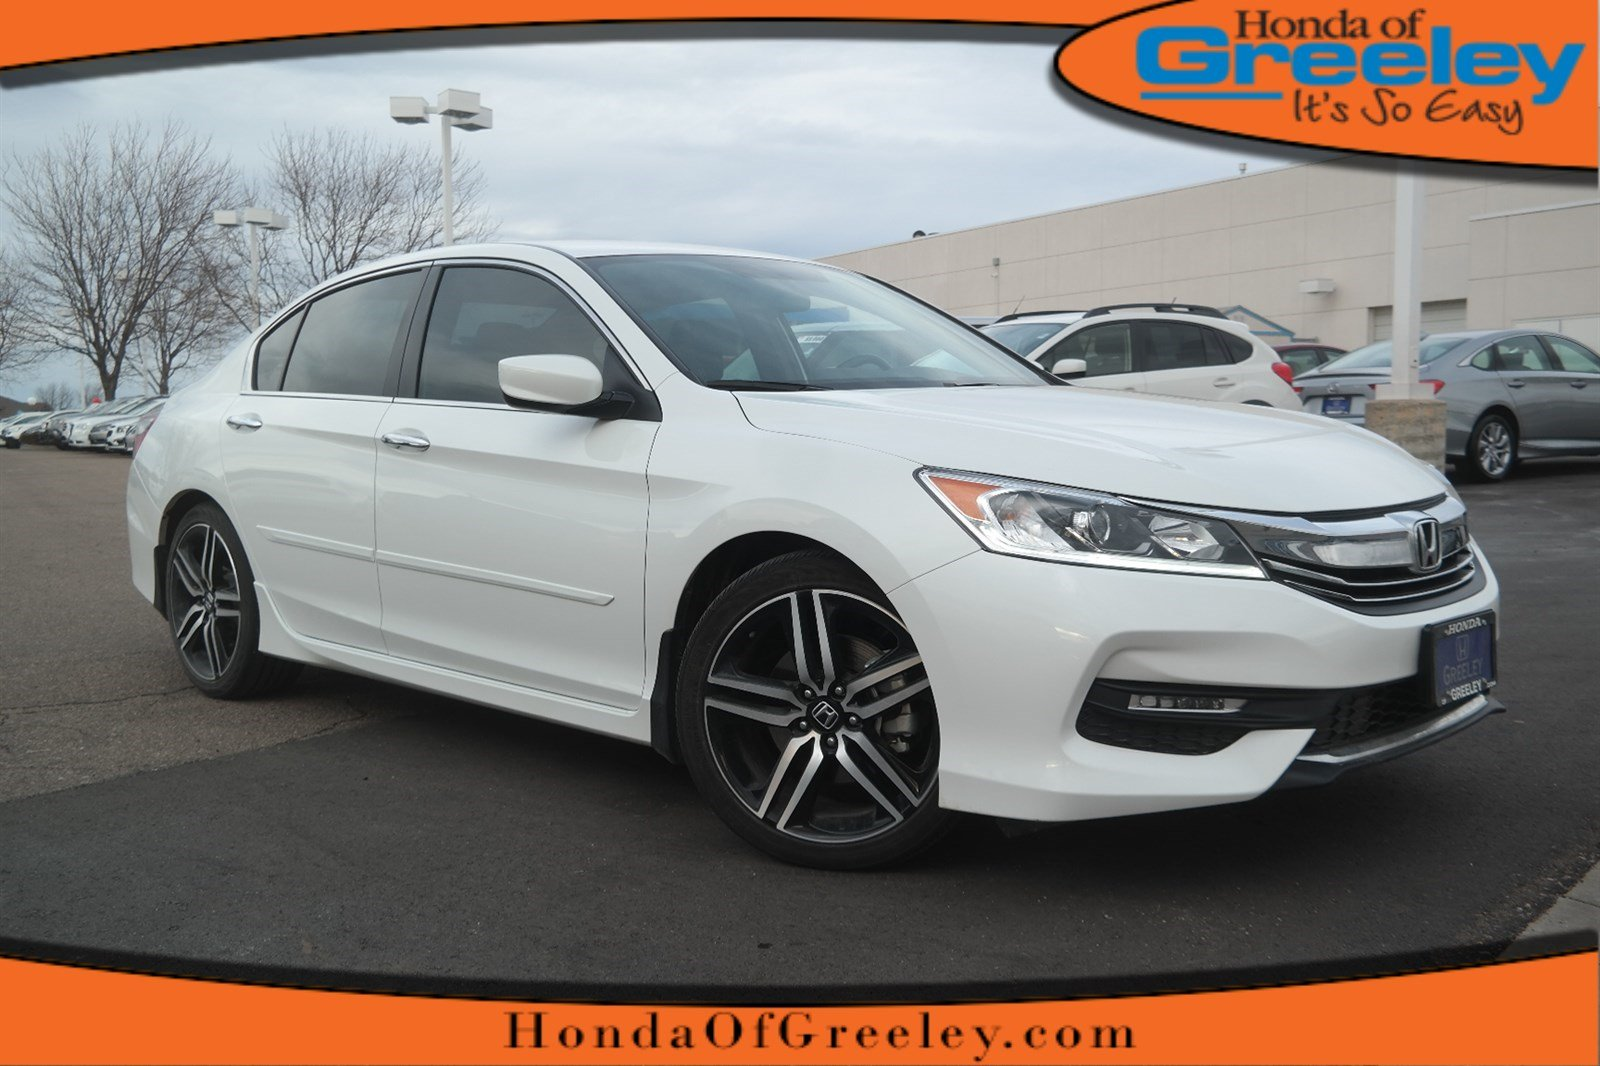 pre owned 2017 honda accord sport se 4dr car in greeley 17h014 honda of greeley. Black Bedroom Furniture Sets. Home Design Ideas